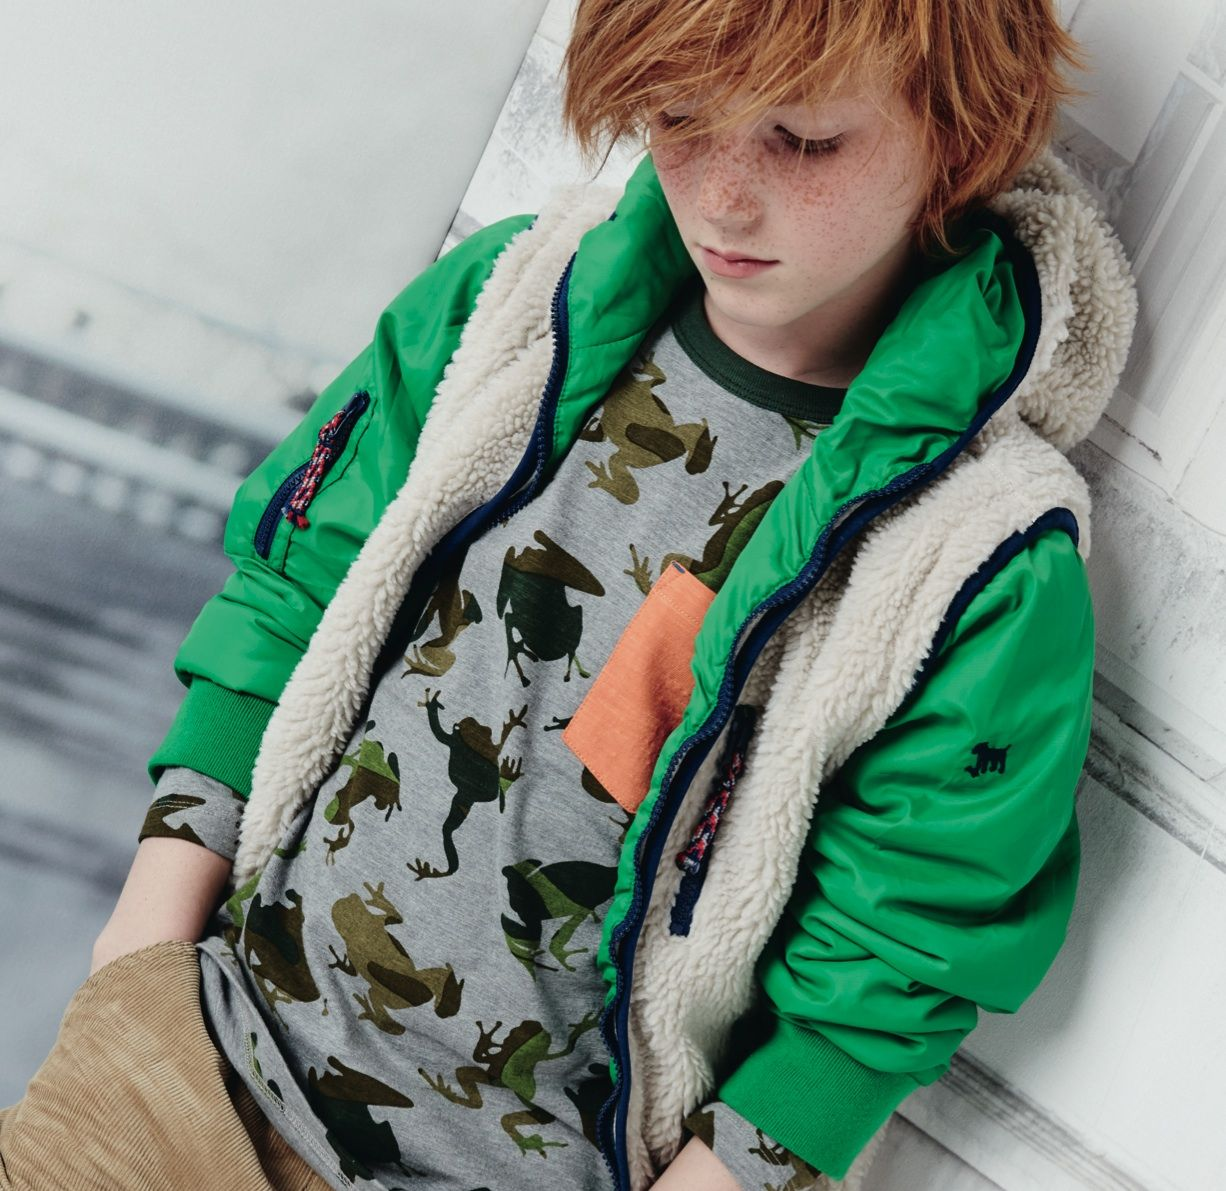 boys get a fun camouflage frog print new for fall winter